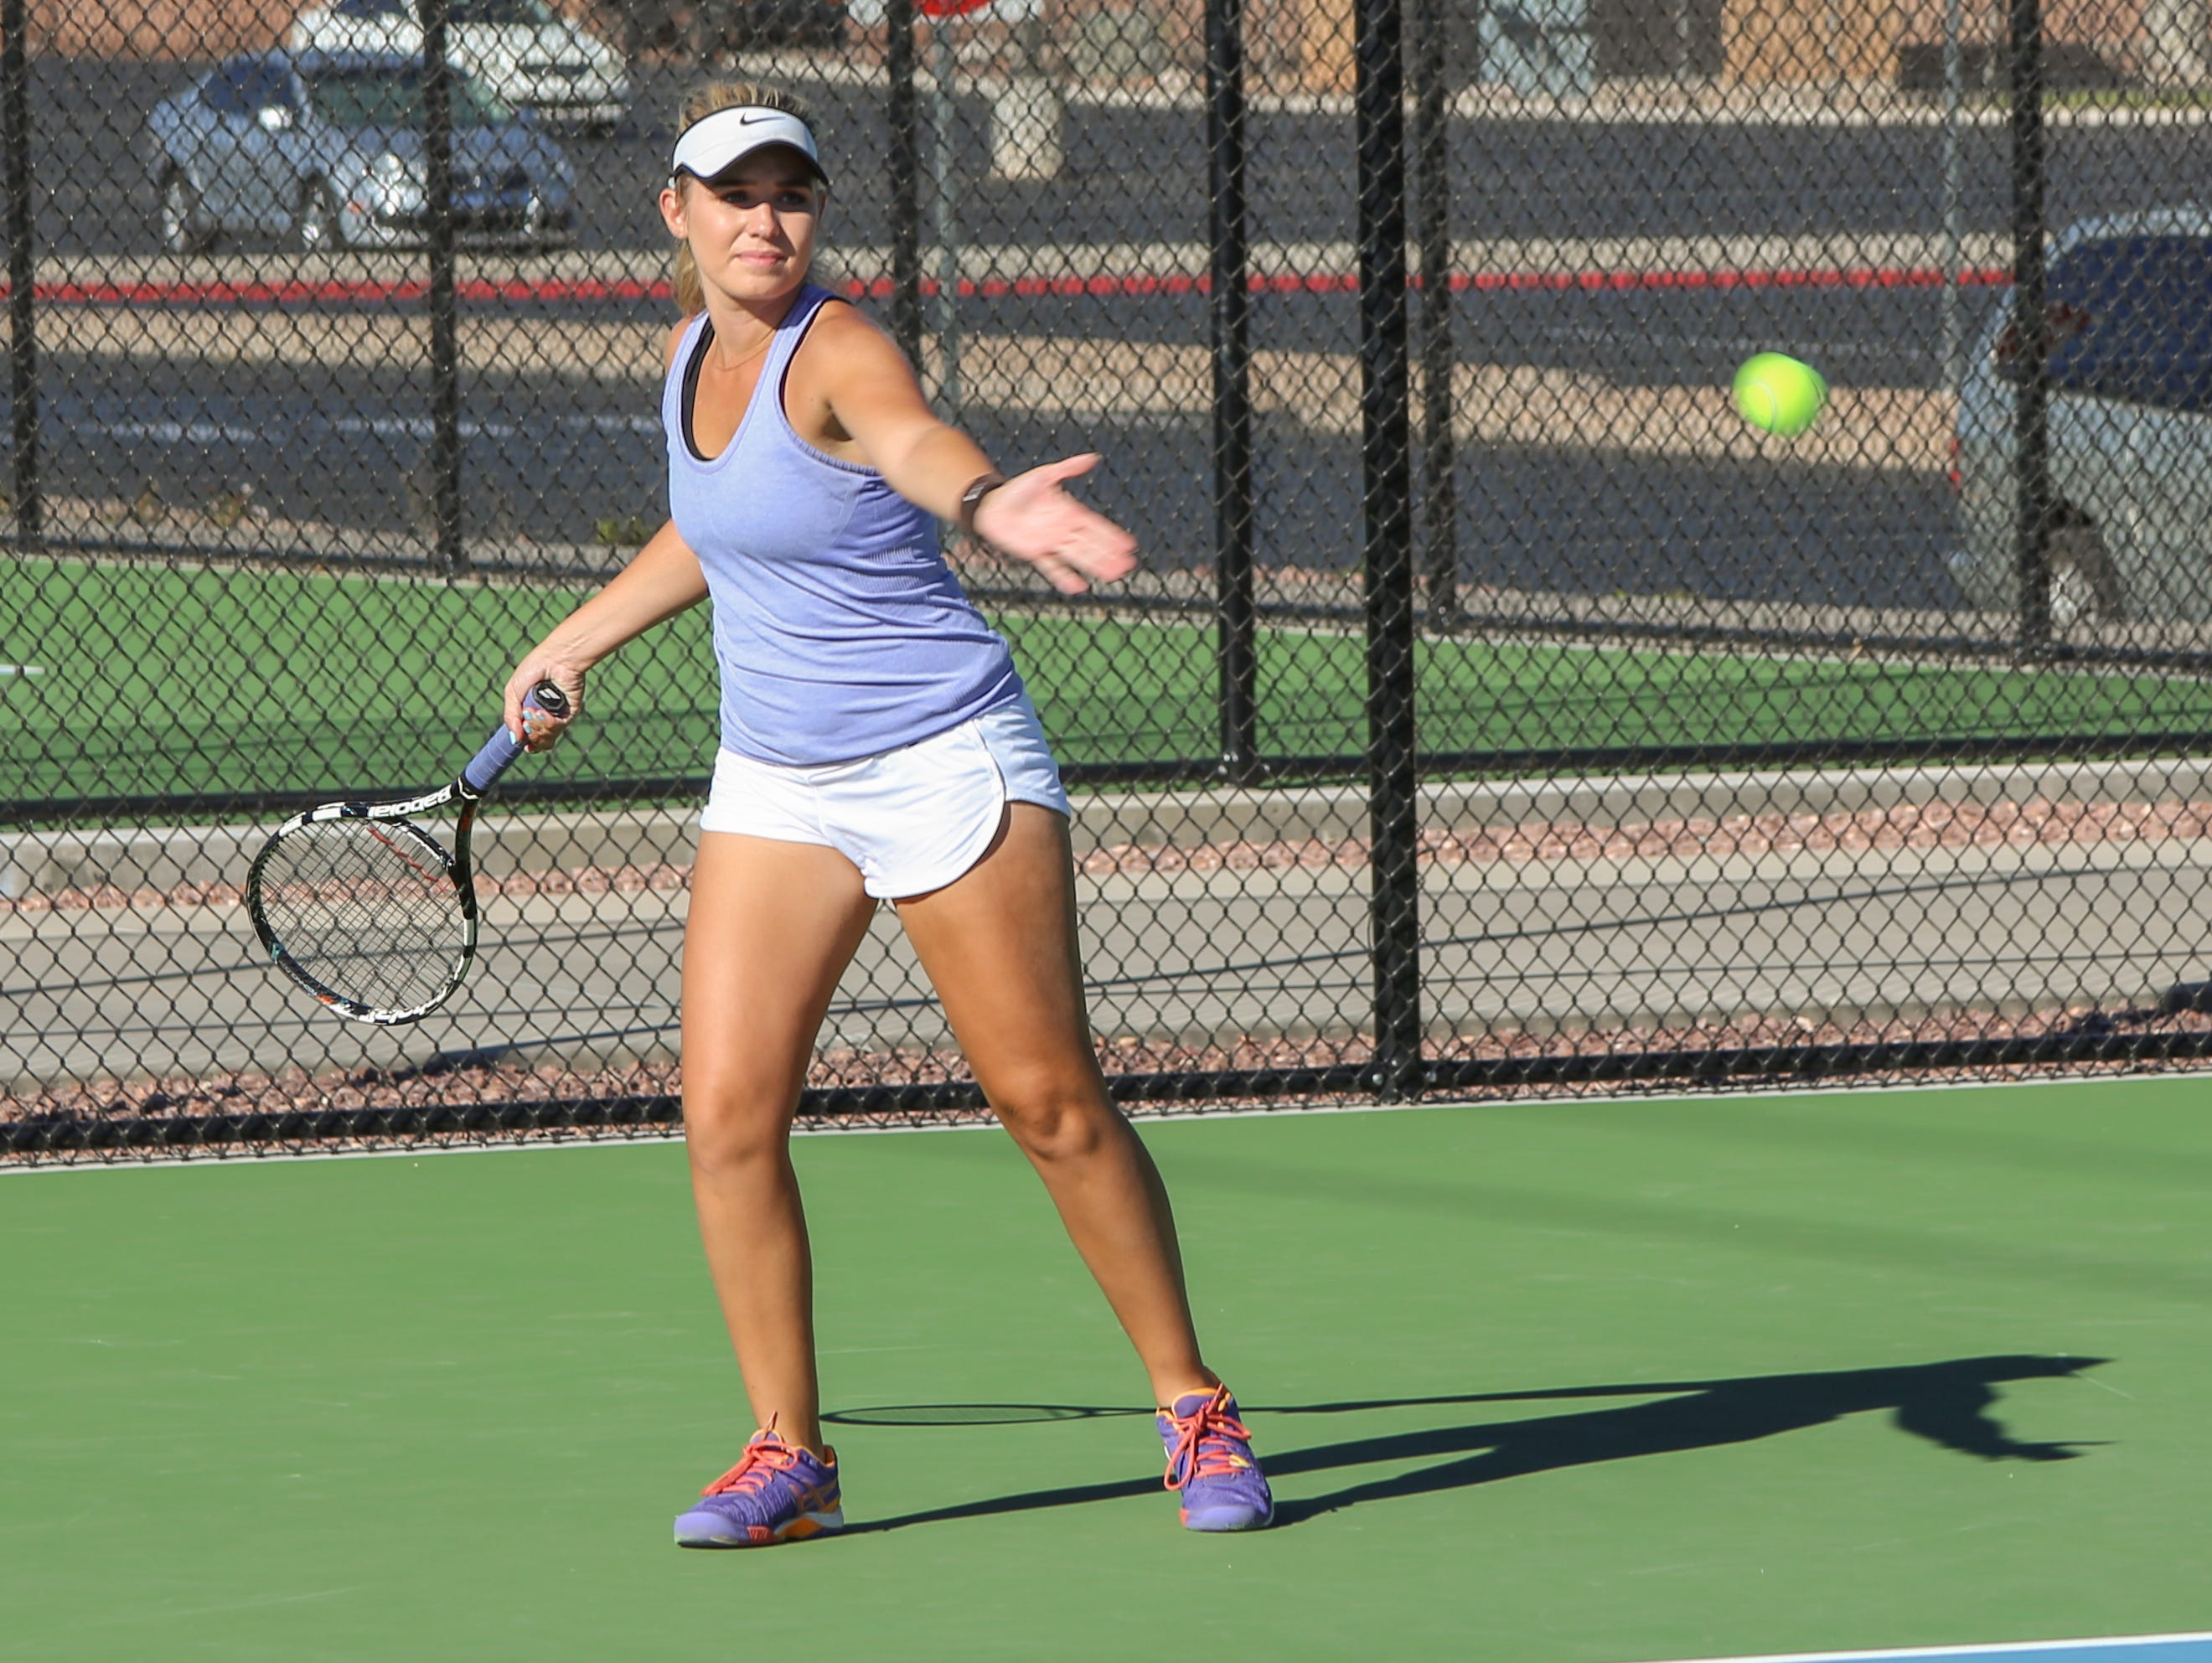 Pine View's Hattie Erekson hits a forehand at practice as she prepares for the upcoming 3A State Tournament, Tuesday, October 4, 2016.